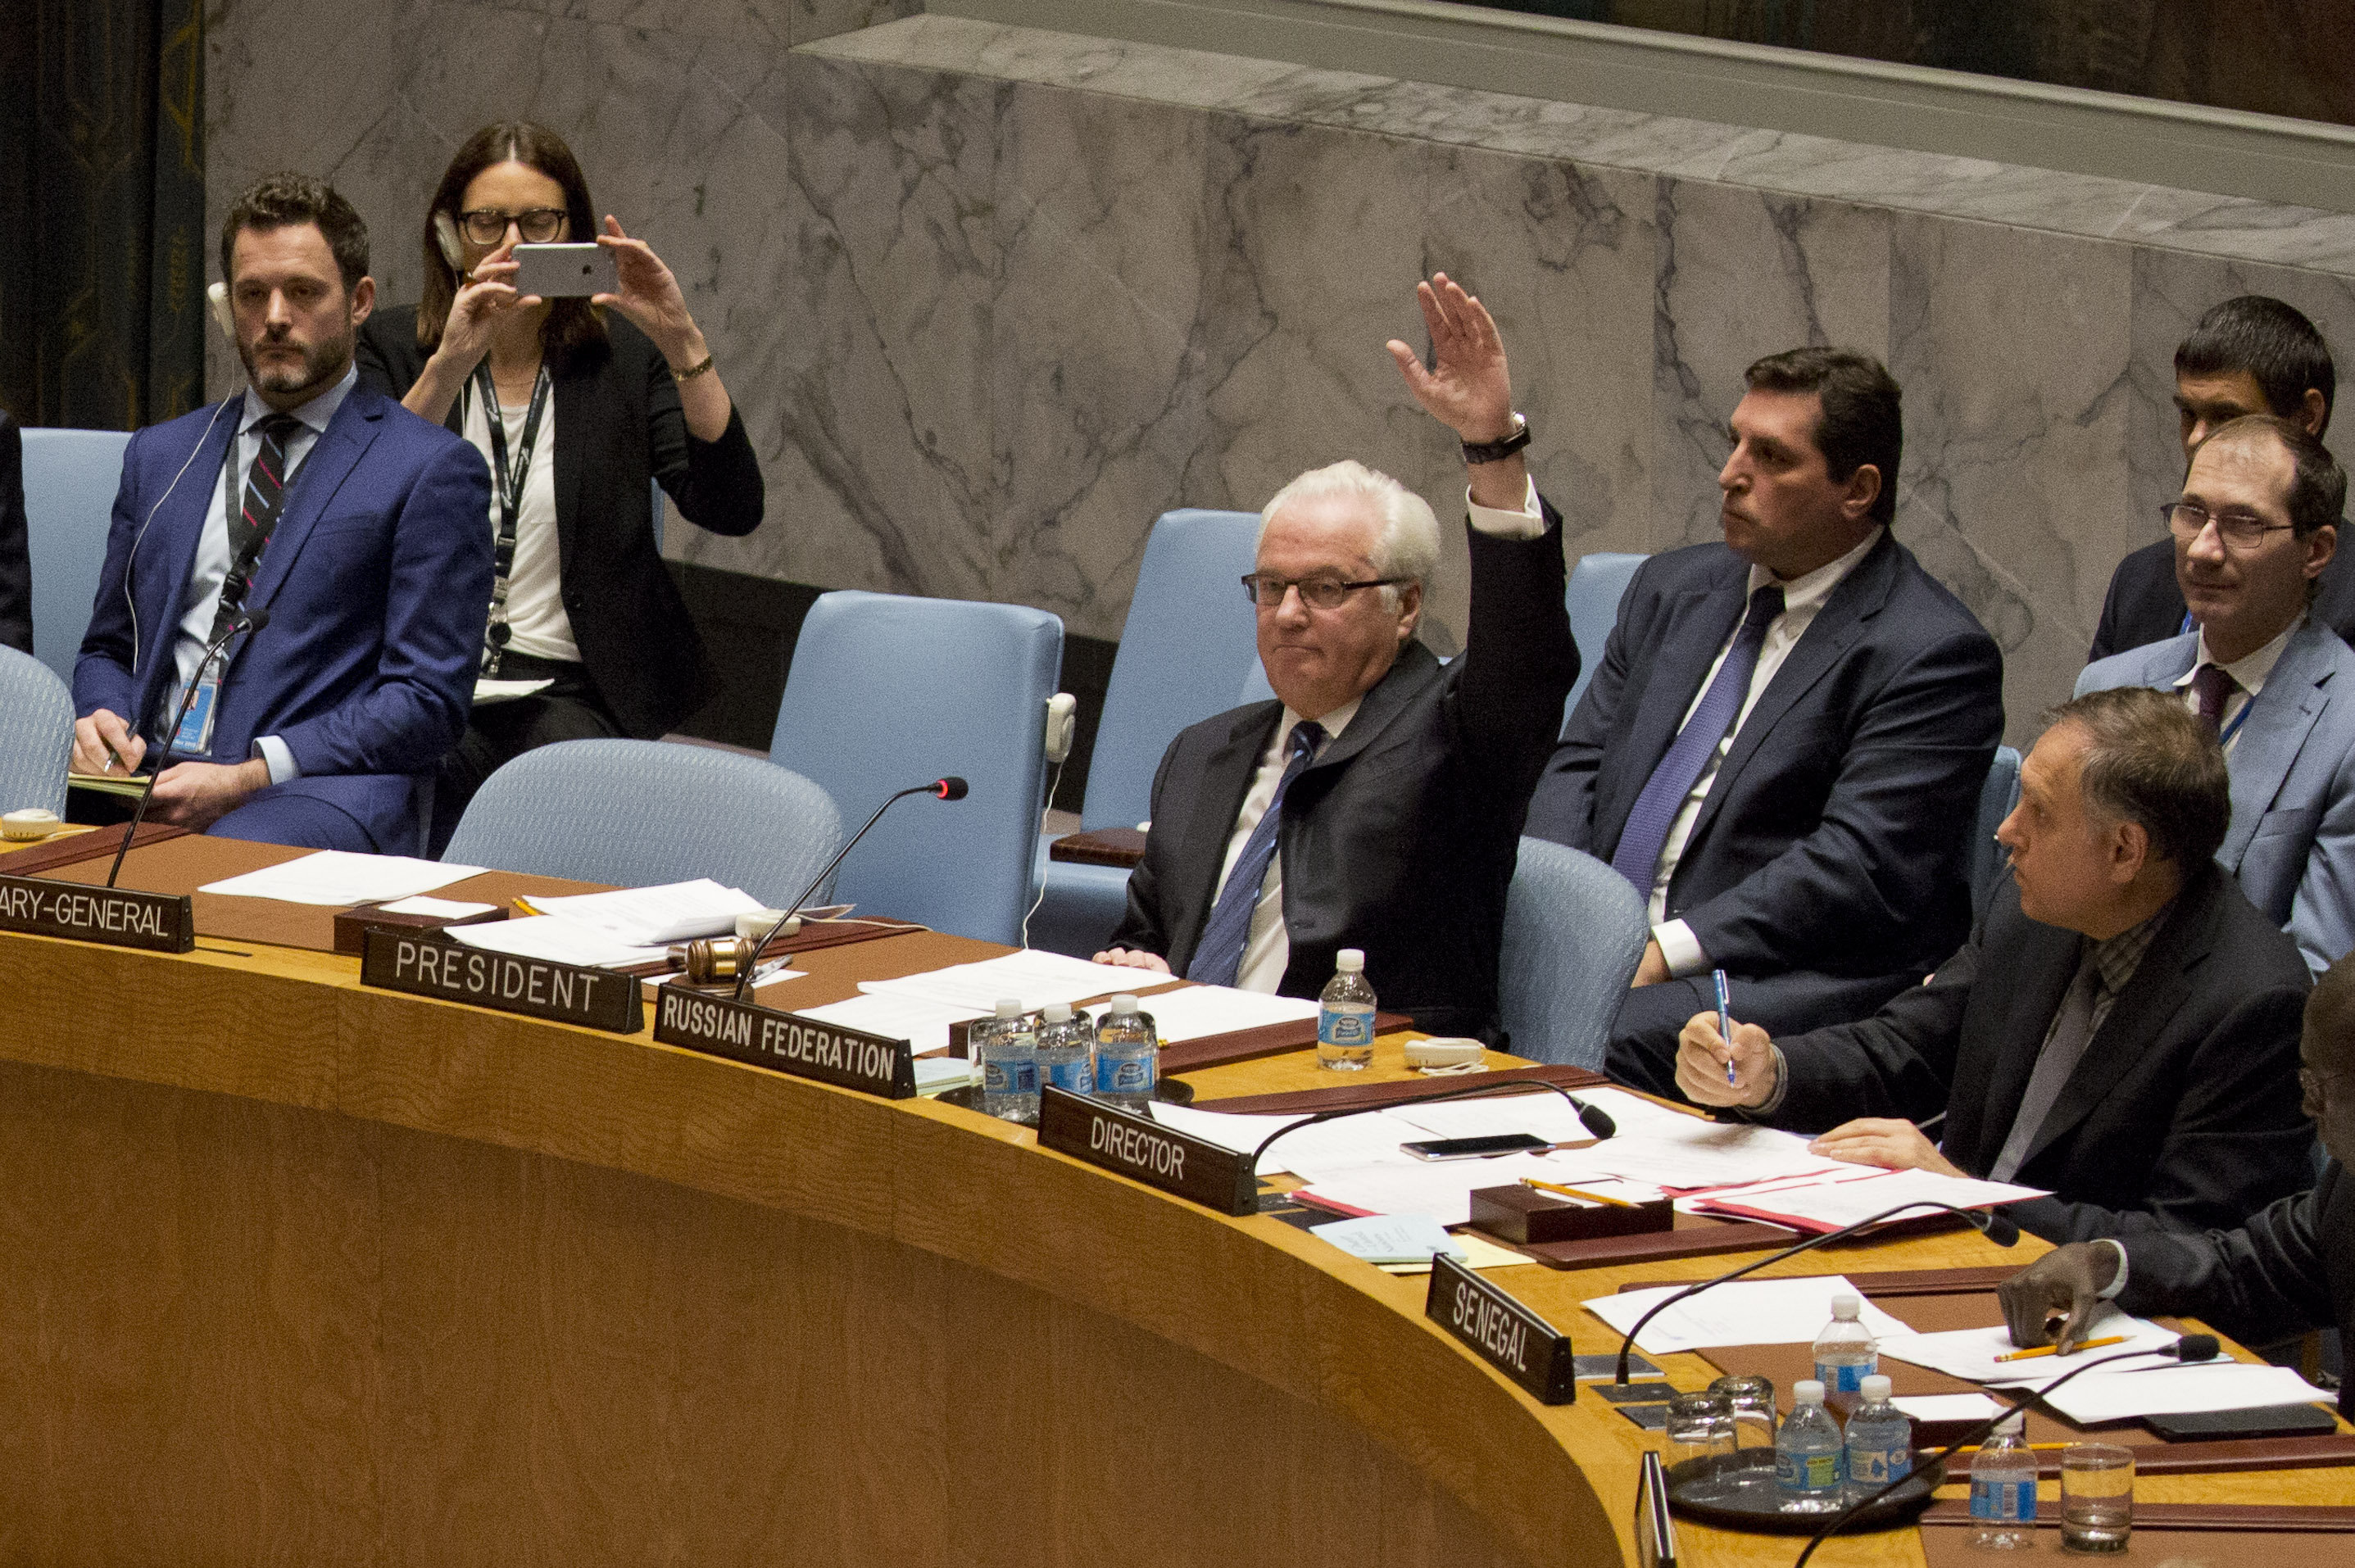 Russian ambassador to the United Nations Vitaly Churkin vetoes a Security Council vote on a French-Spanish resolution on Syria at the UN headquarters, October 8, 2016, in New York City